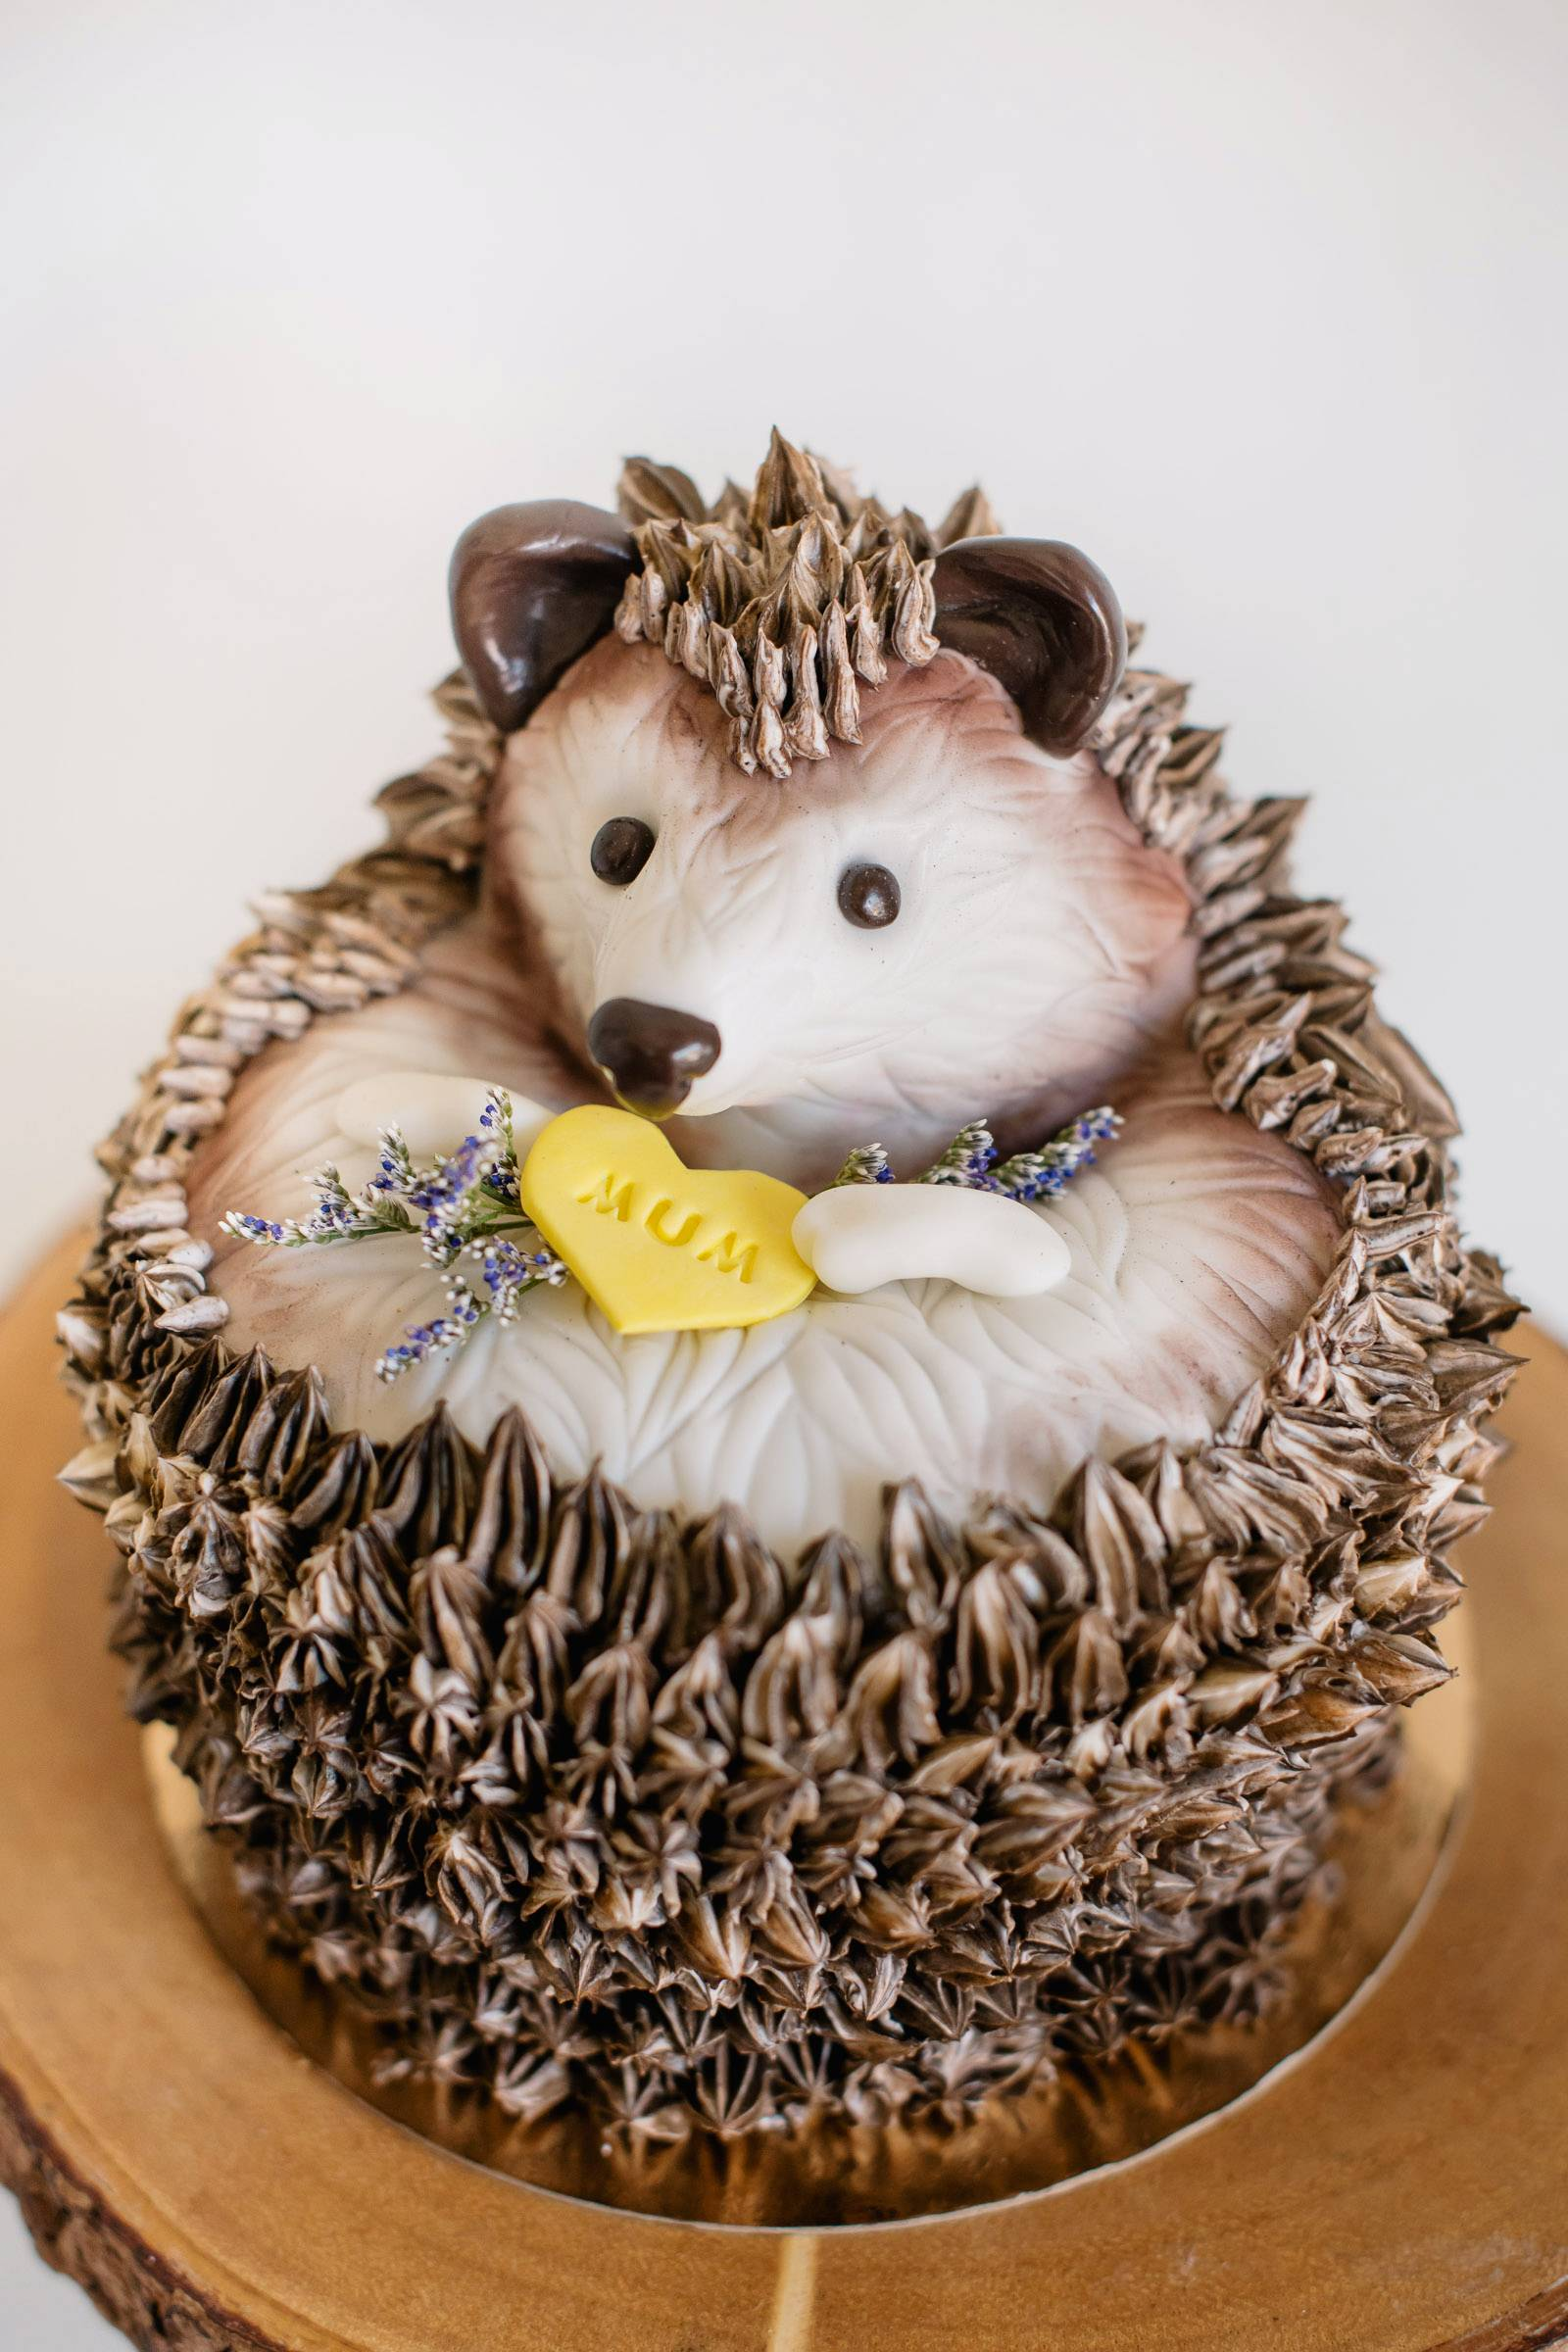 Outstanding Canmores Kake By Darci Hedgehog Cake Canmore Wedding Tips Funny Birthday Cards Online Inifodamsfinfo